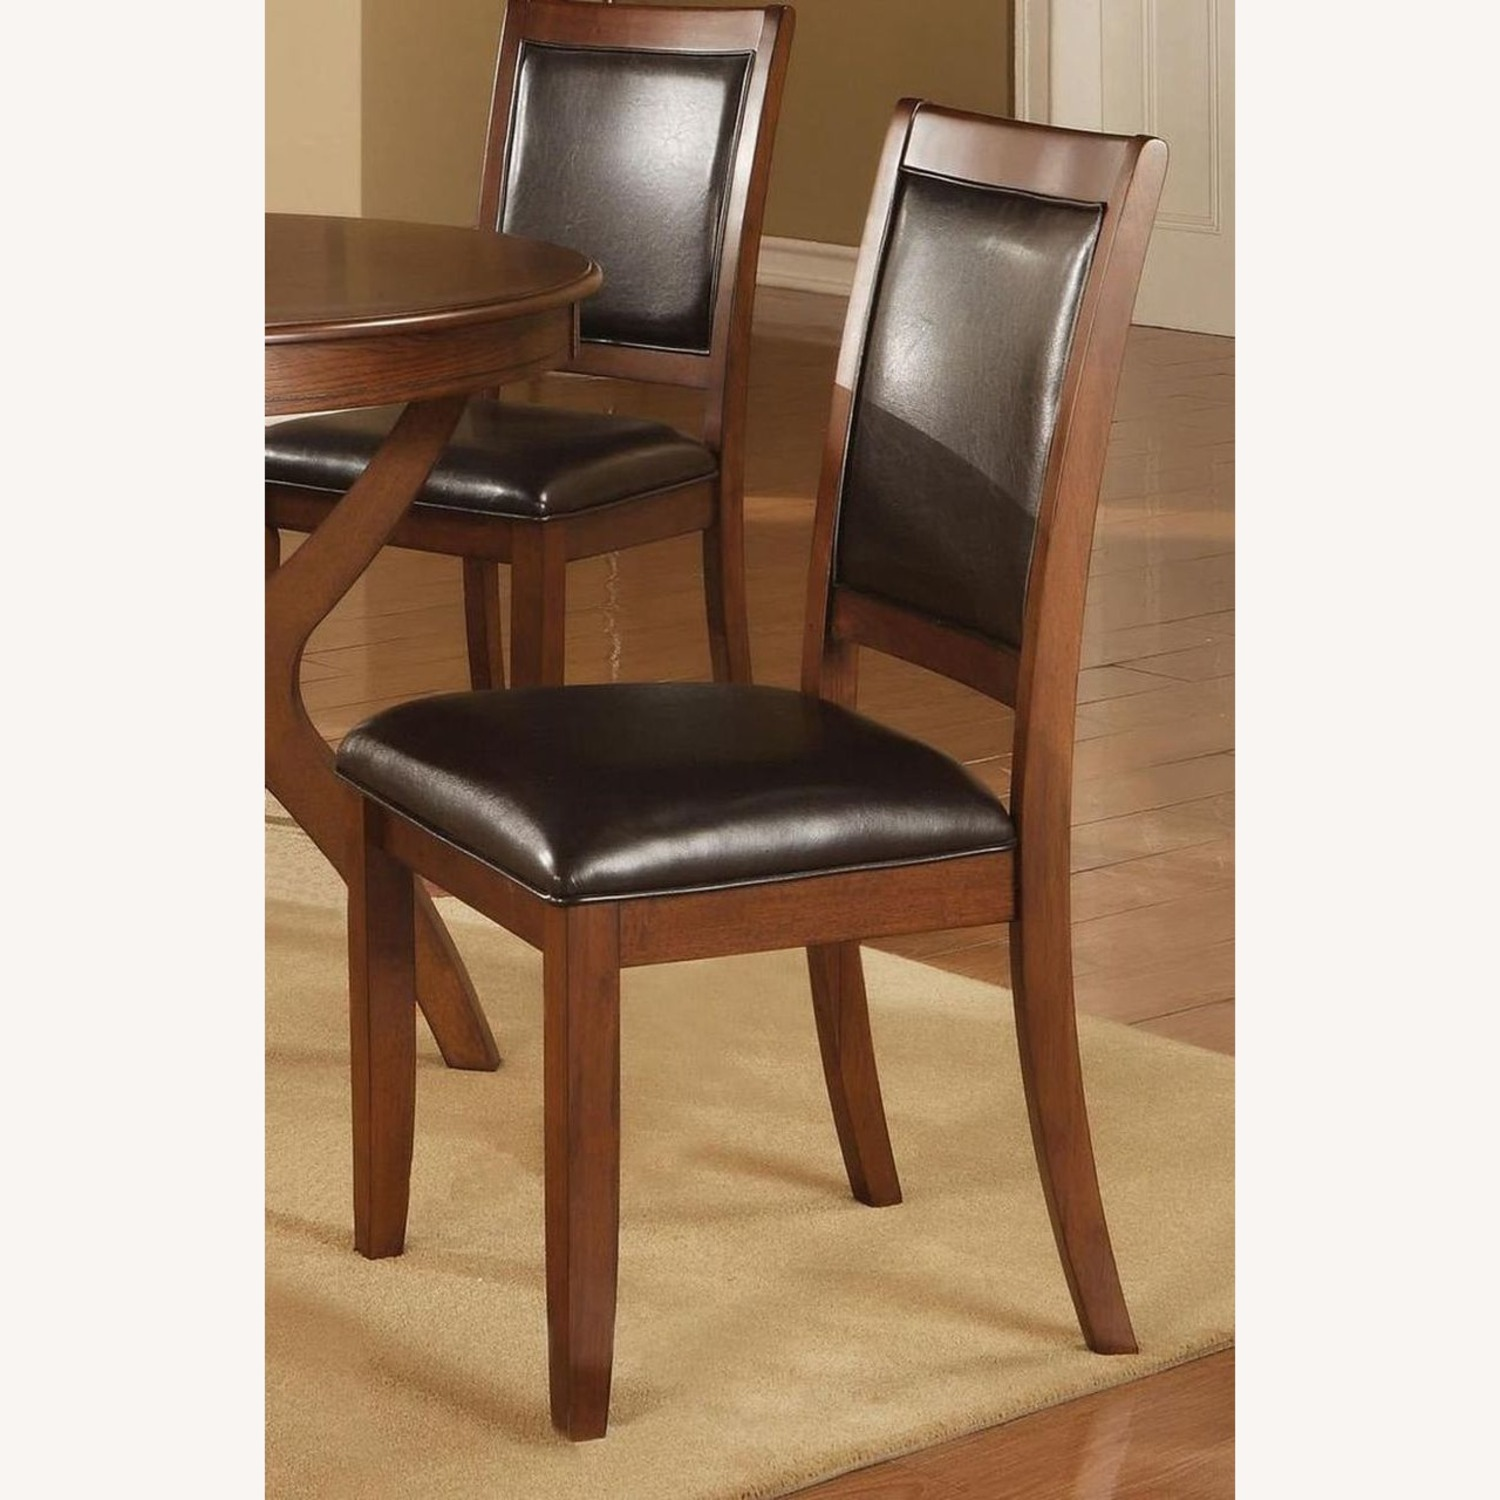 Transitional Side Chair In Black Faux Leather - image-2